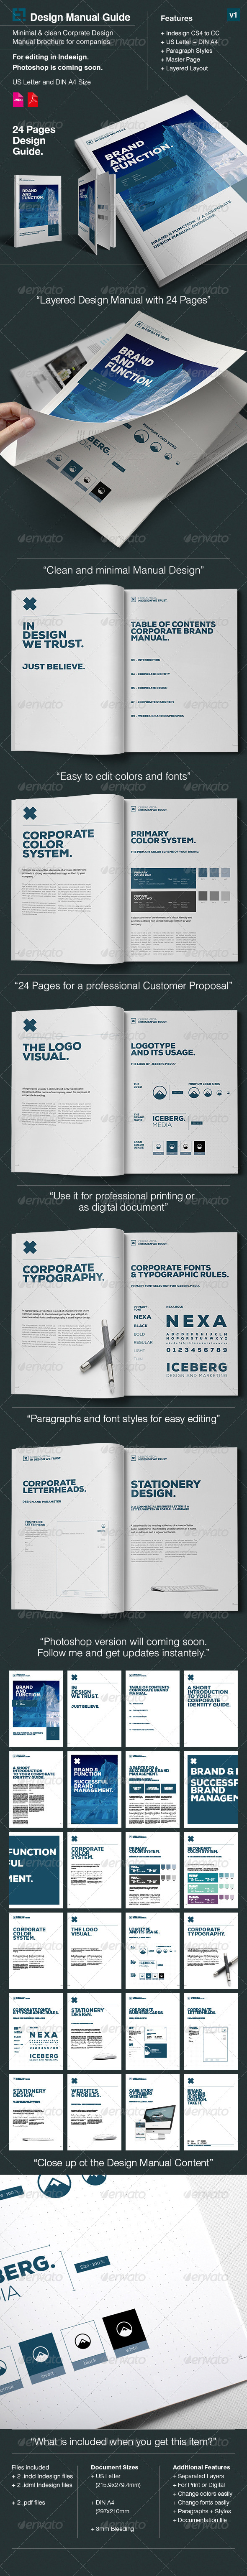 GraphicRiver Corporate Design Manual Guide 24 Pages 8545655